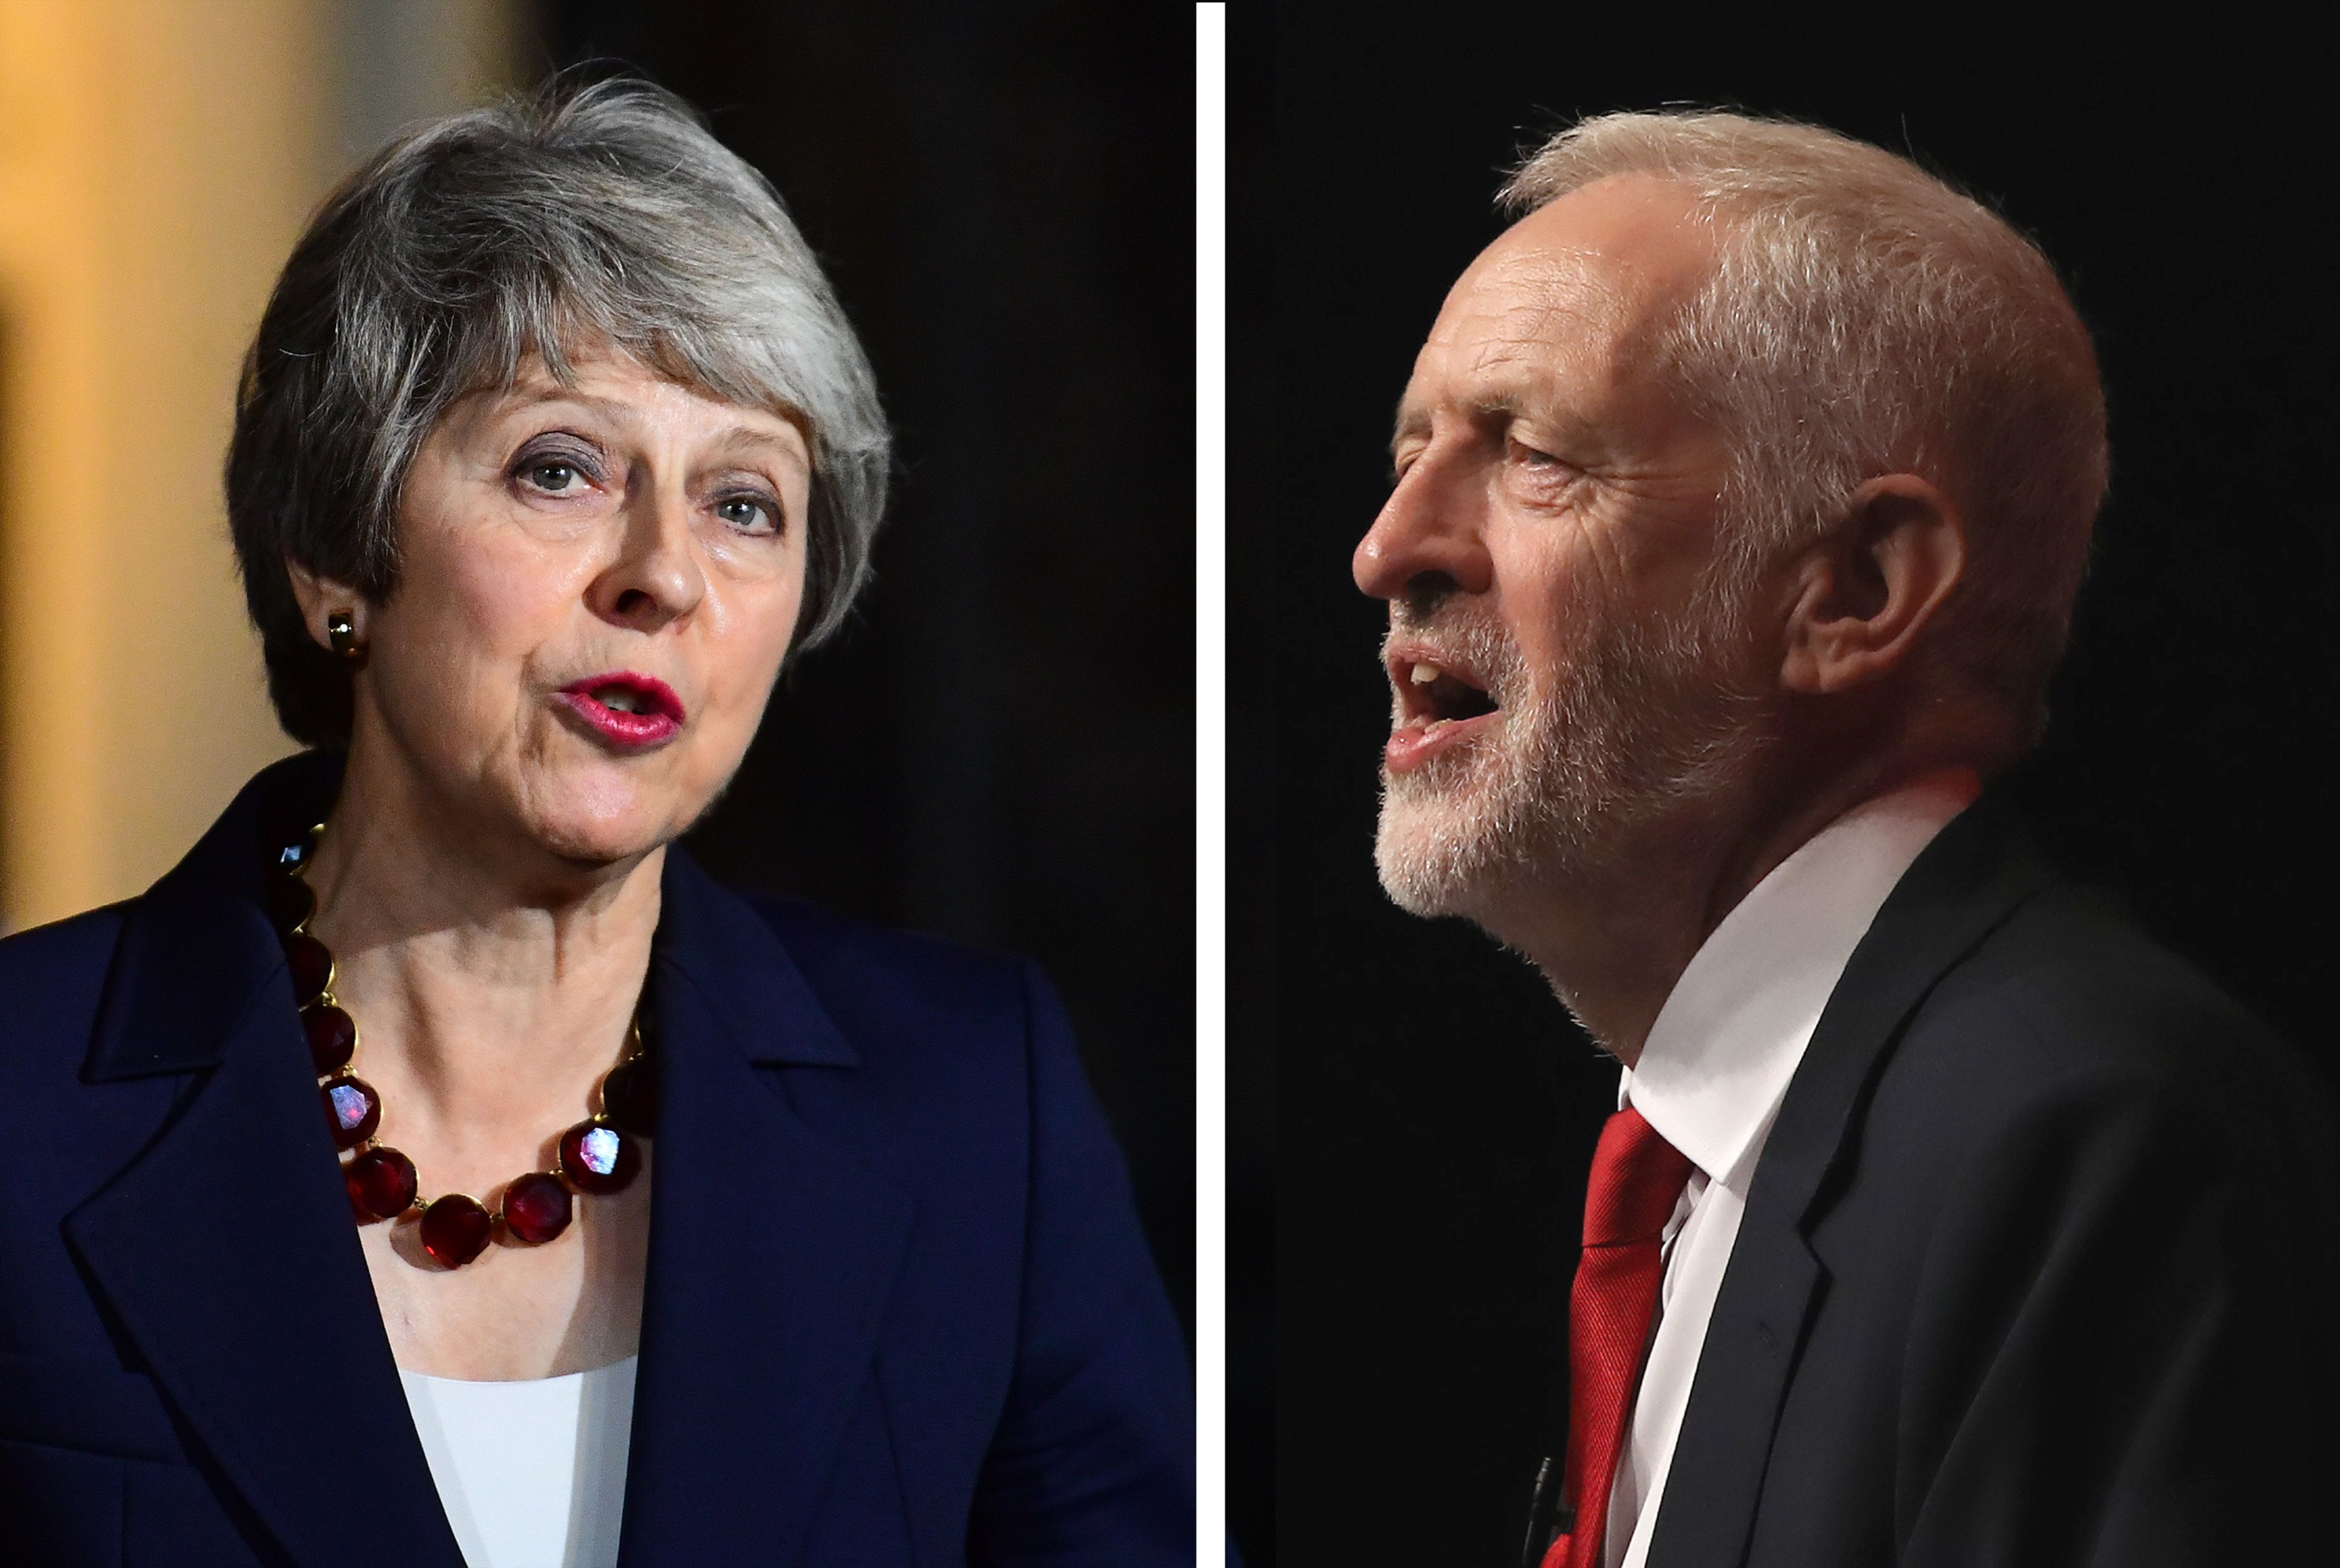 Theresa May Is 'Wasting £171,000-An-Hour On No-Deal Preparations,' Says Jeremy